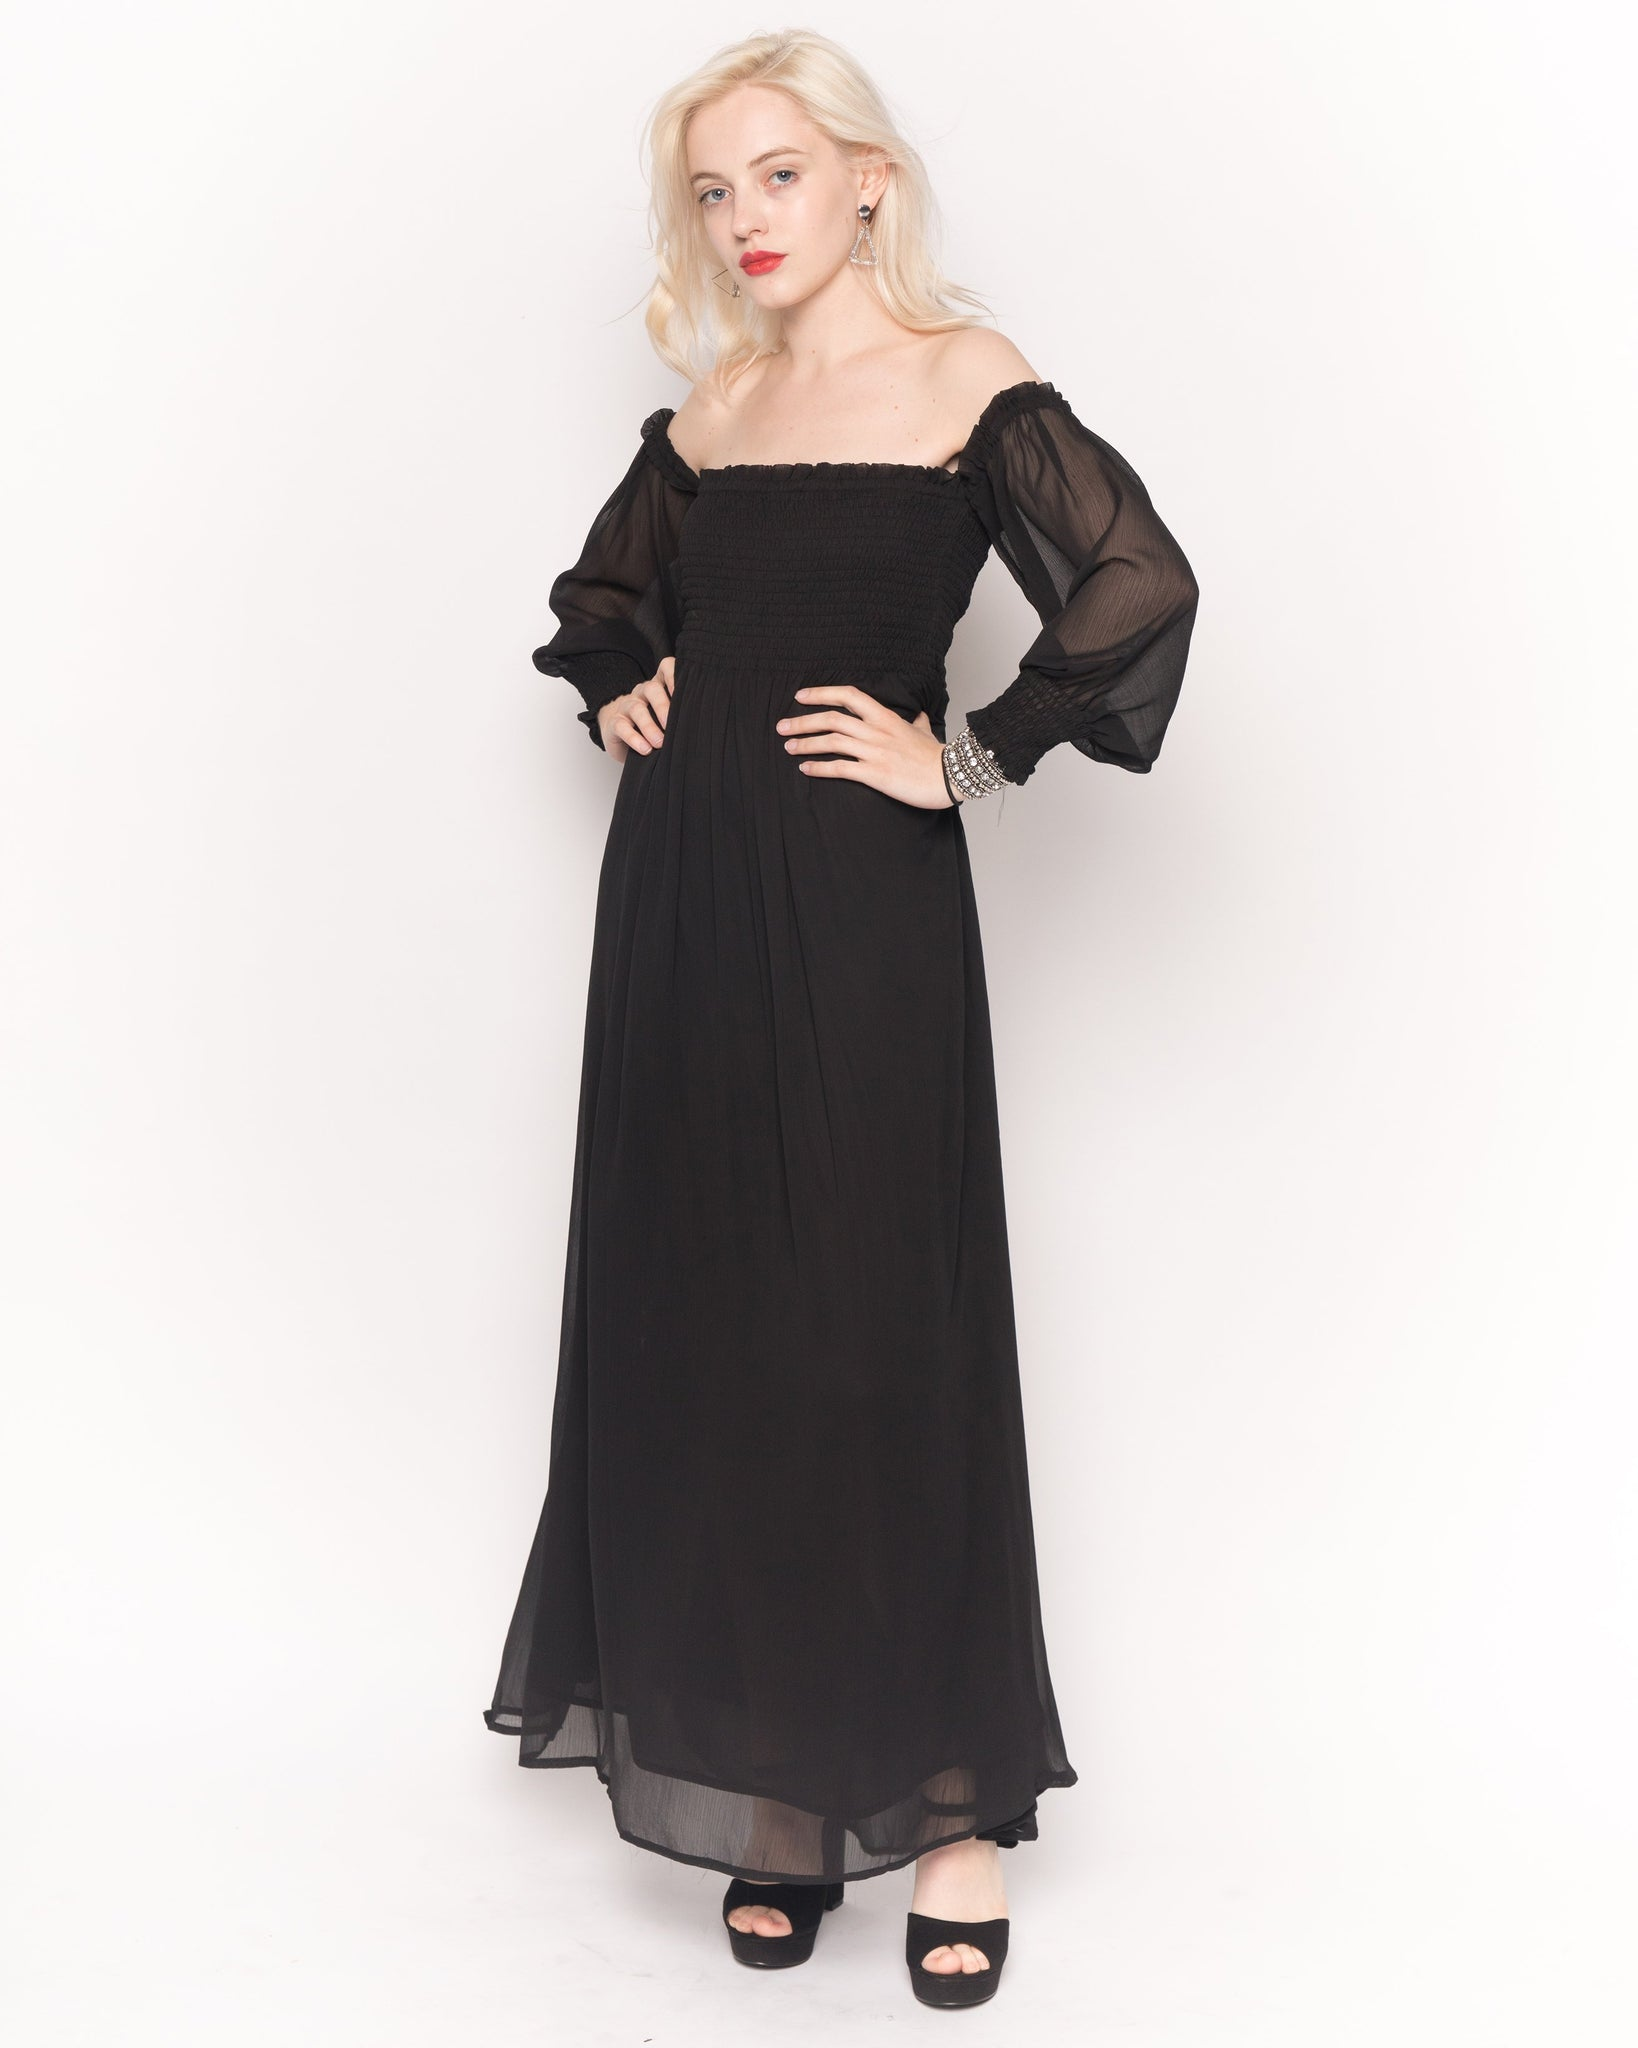 Off Shoulder Chiffon Maxi Dress With Long Sleeves In Black -CY Boutique